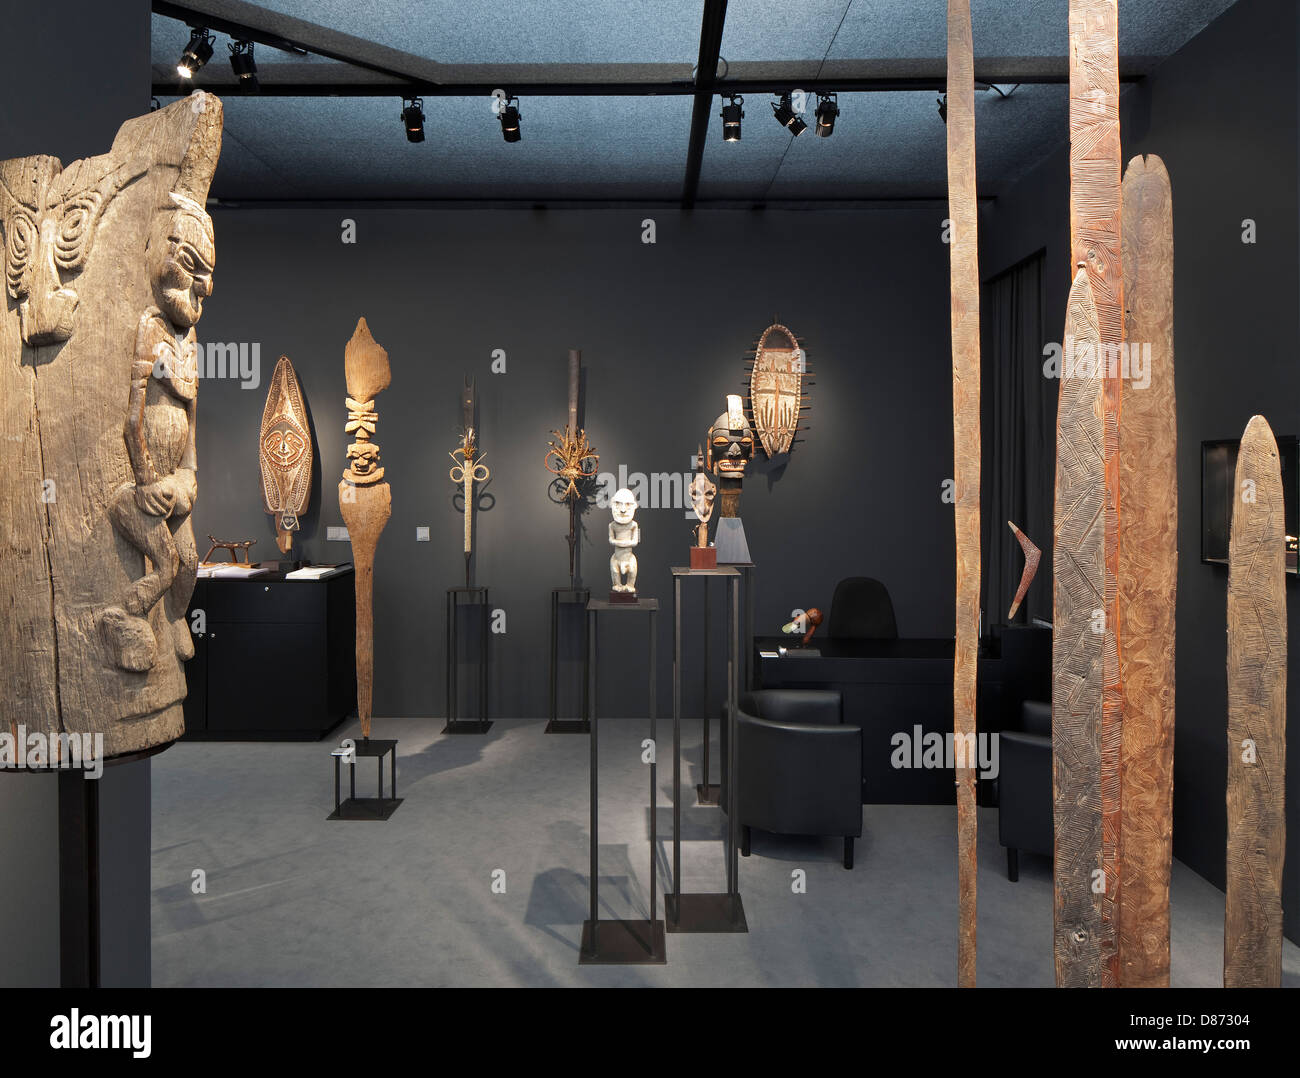 Galerie Meyer Oceanic Art London United Kingdom. Architect Selldorf Architects 2012. View looking into booth showing exhibit & Galerie Meyer Oceanic Art London United Kingdom. Architect Stock ...